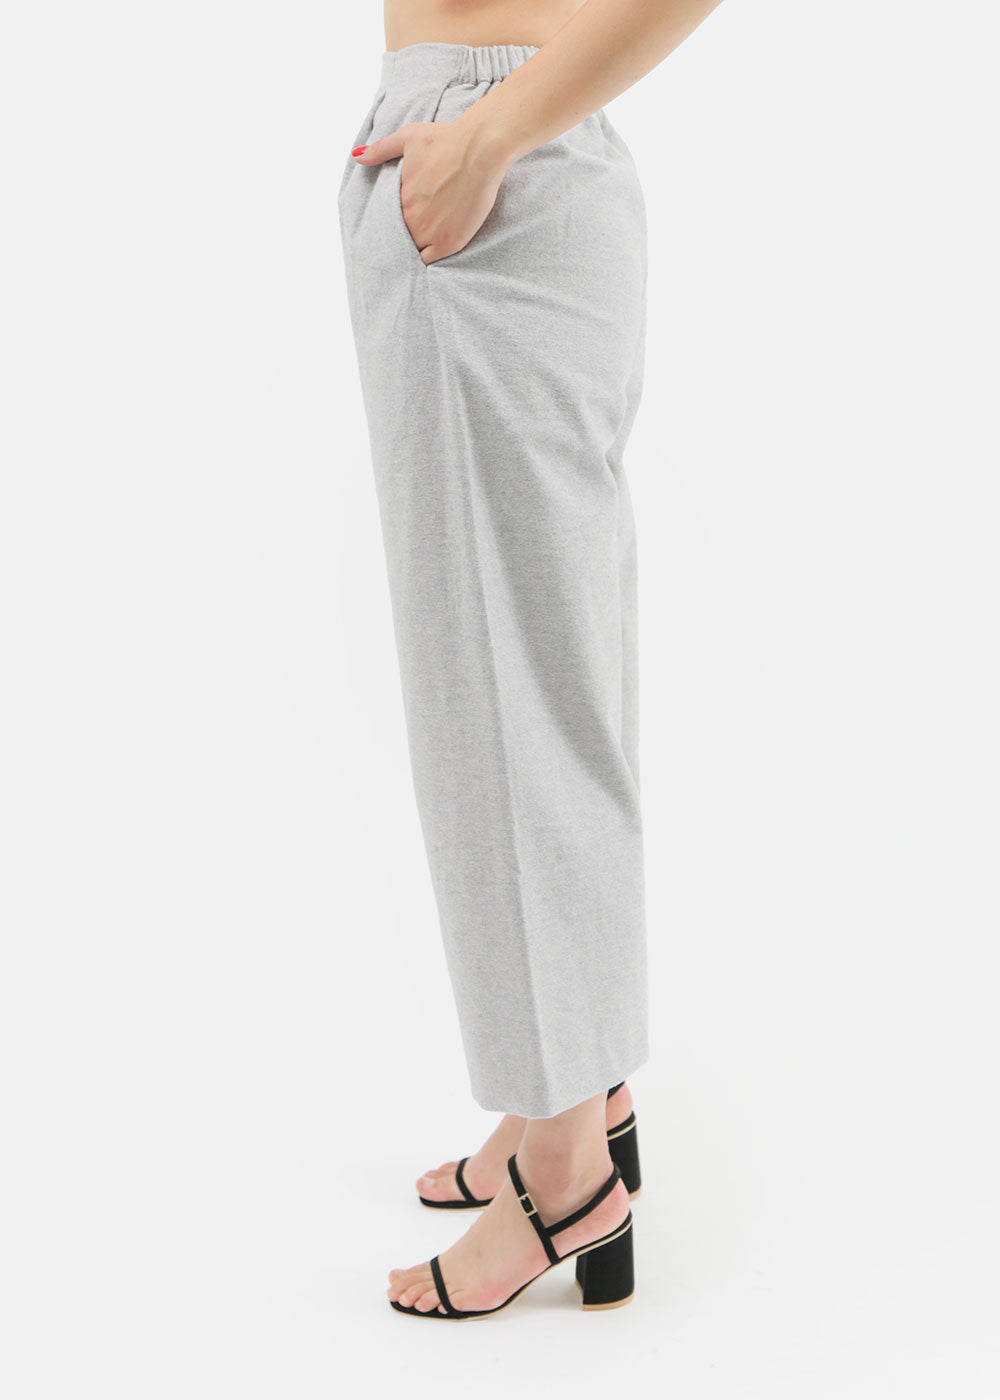 Kaarem Gripeweed Cropped Pant — Shop sustainable fashion and slow fashion at New Classics Studios